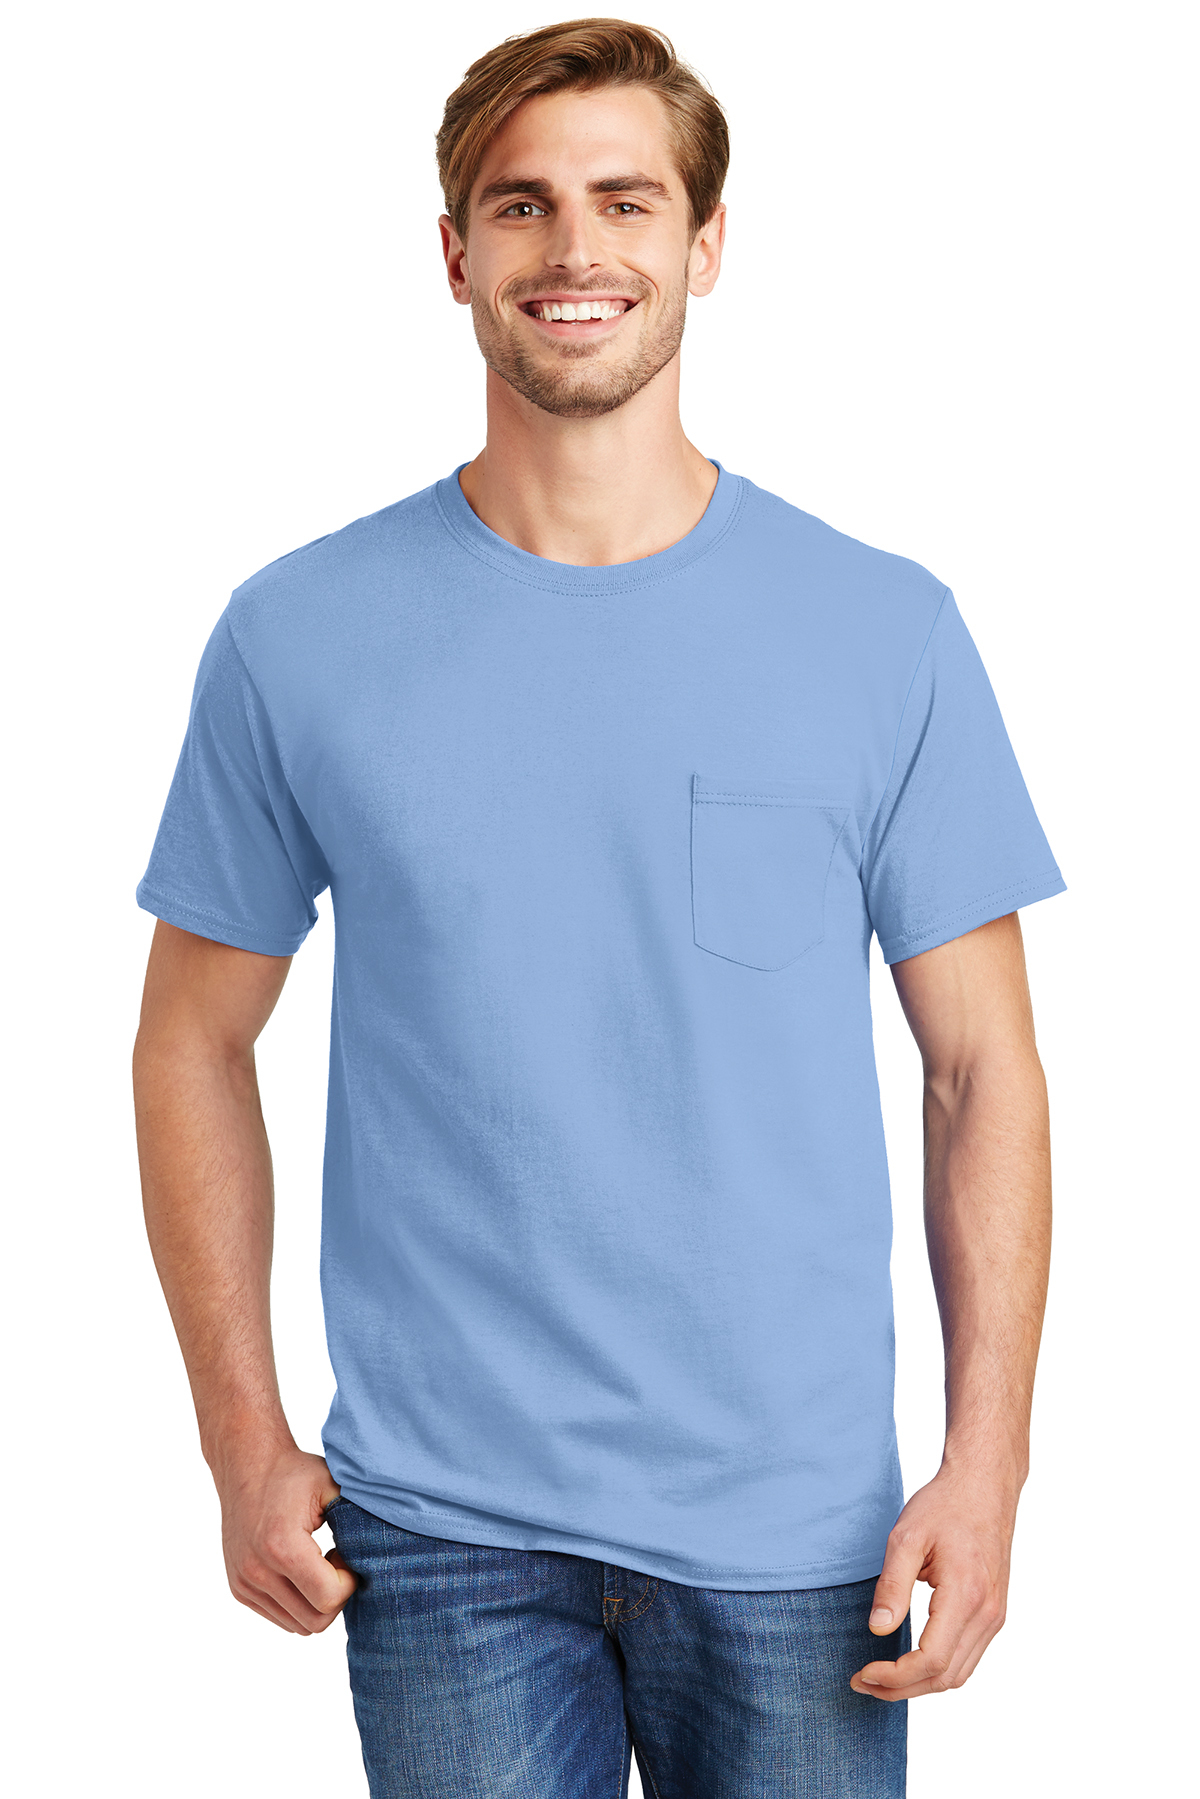 Hanes Tagless 100 Cotton T Shirt With Pocket 6 61 100